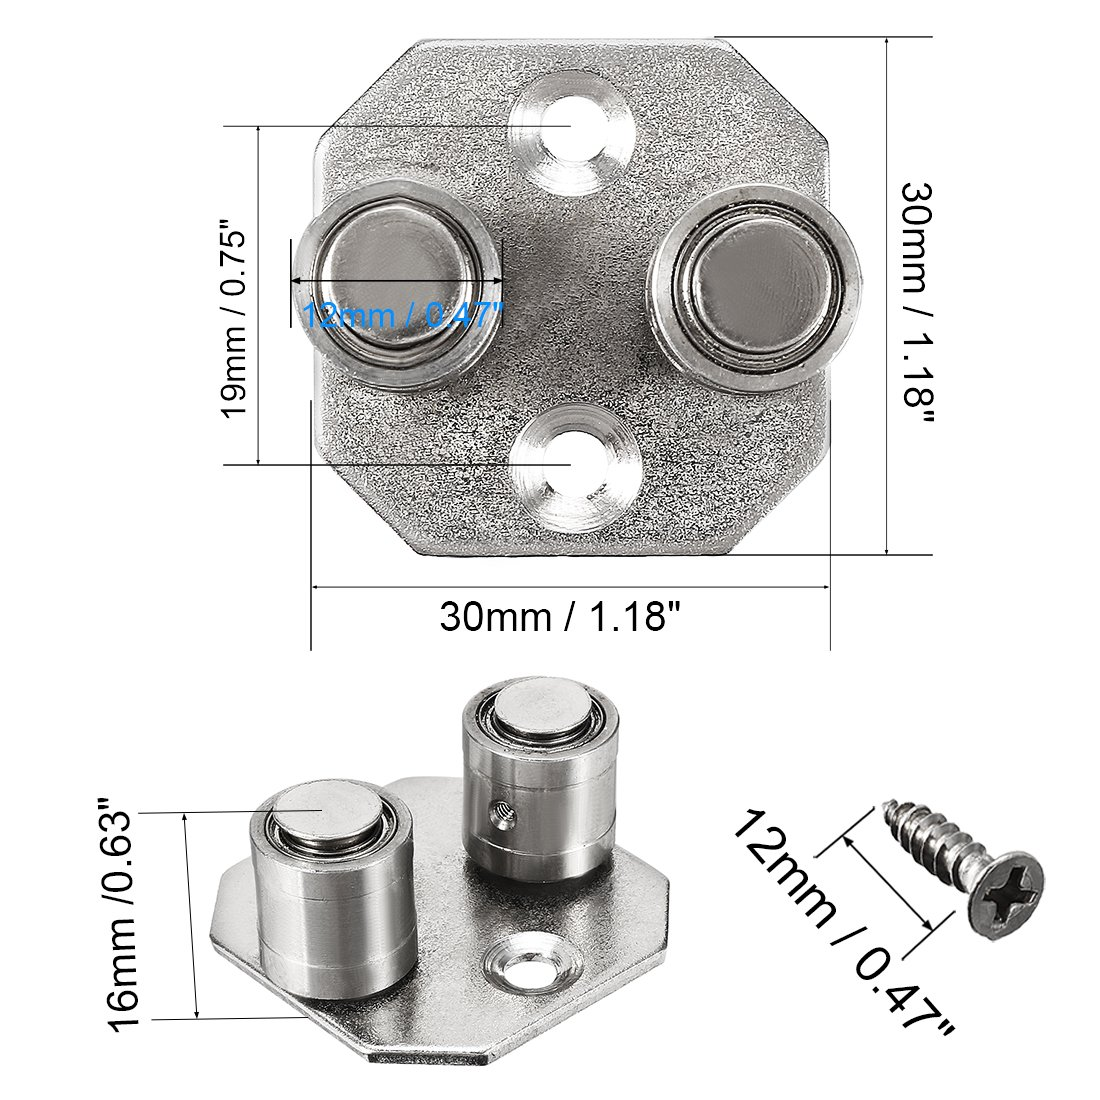 uxcell 47mmx18mm 10mm Shaft Diamter Stainless Steel Lower Guide for Sliding Door Floor a18030600ux0029